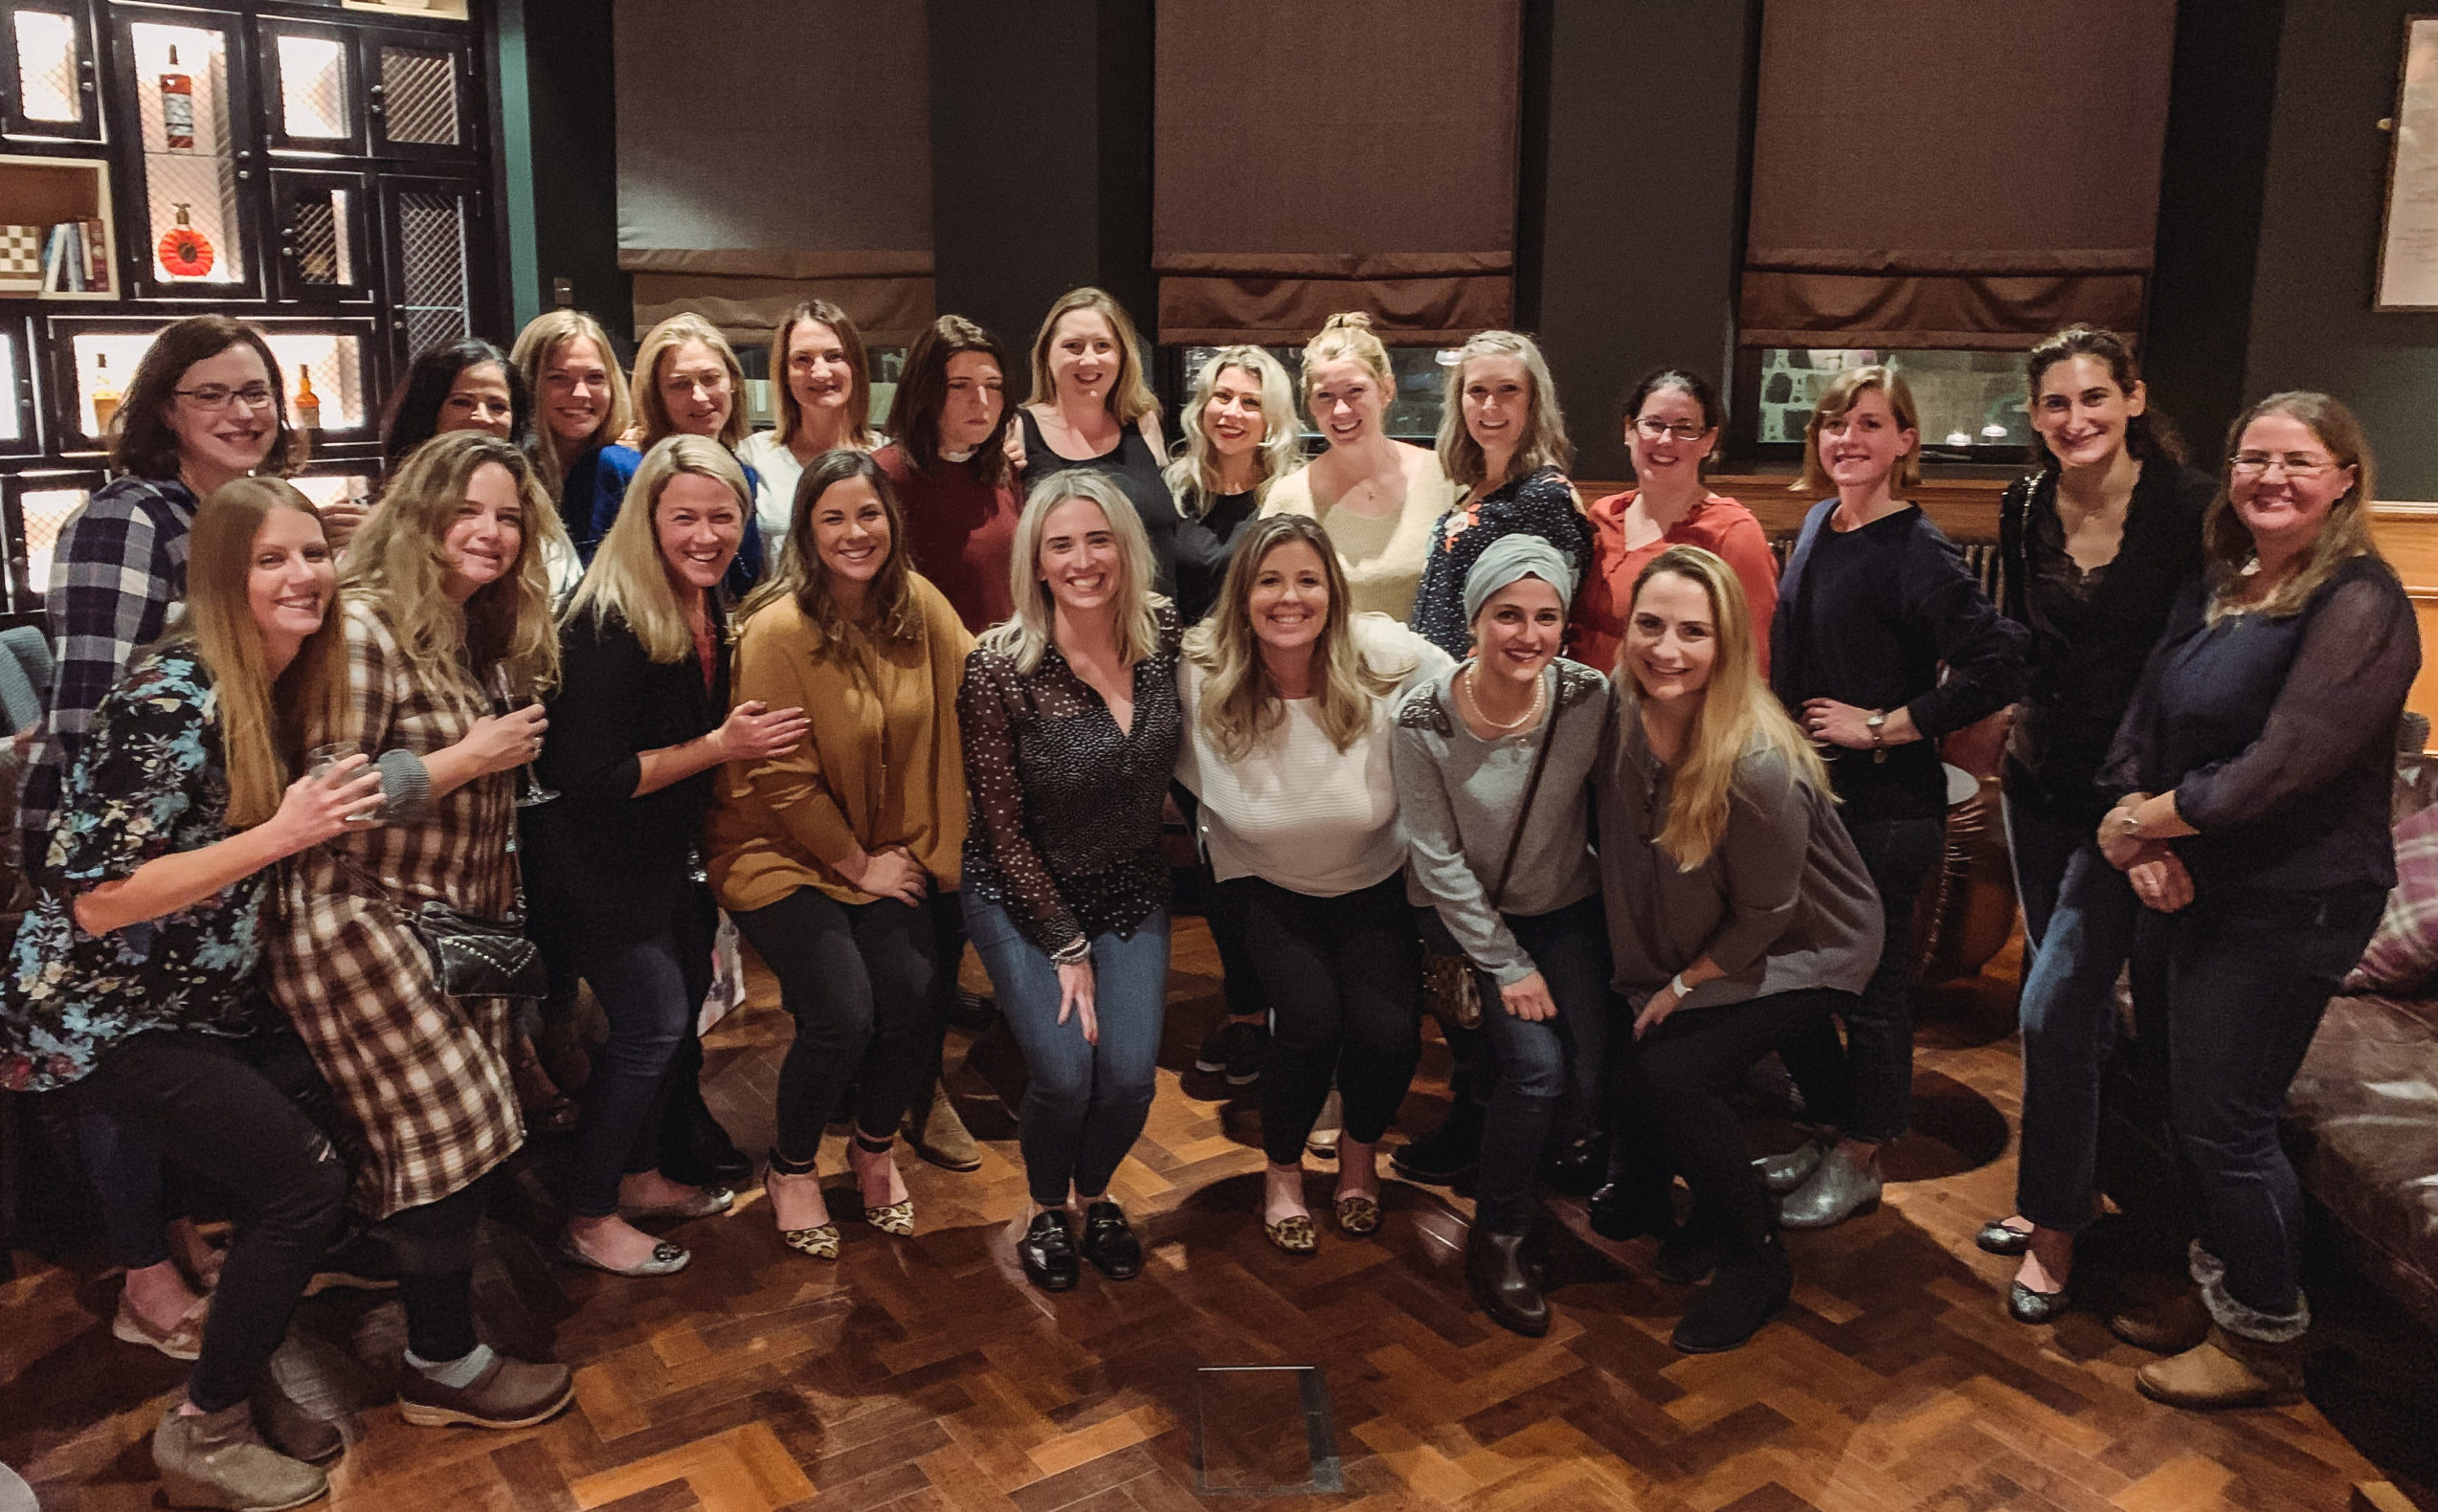 Hugh spirits among the Association of American Women of Aberdeen as they raised funds for charity